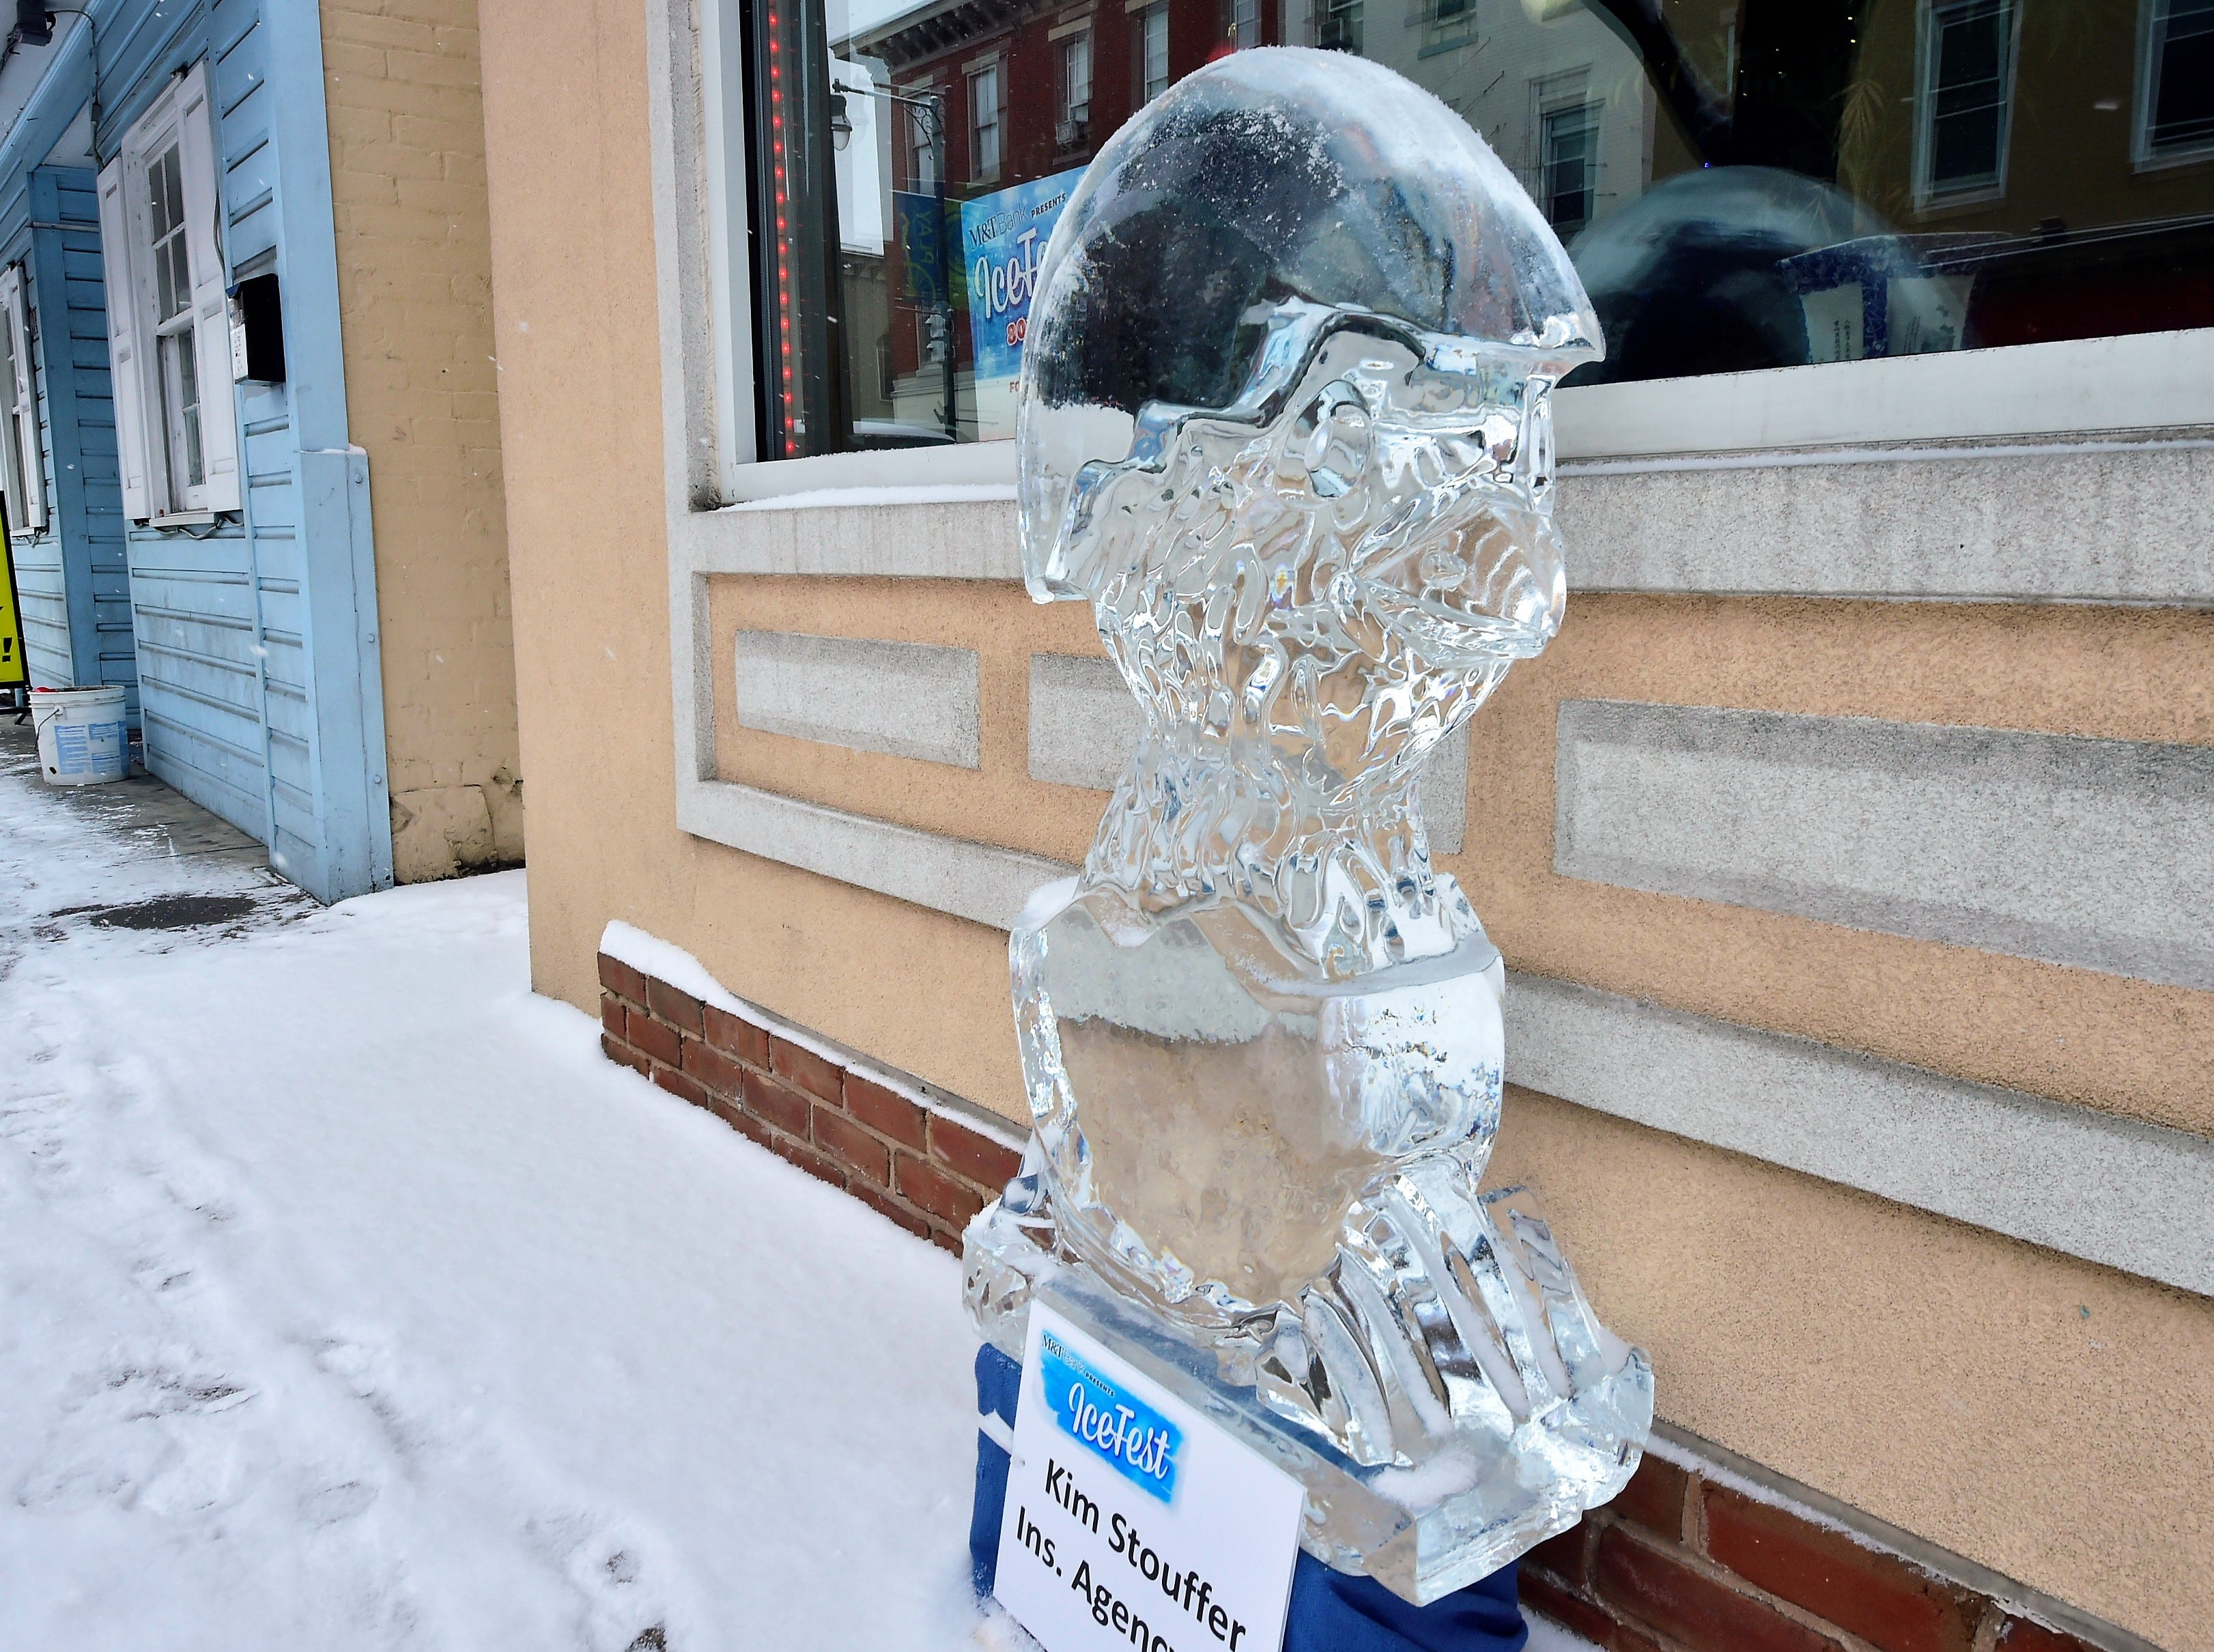 This ice sculpture depicts a chick hatching from an egg.  DiMartino Ice Company carved around 80 ice sculptures for IceFest 2019 in Chambersburg. Here is a small fraction of them. All of the sculptures pictured in this gallery are located on South Main Street between the square and Washington Street.